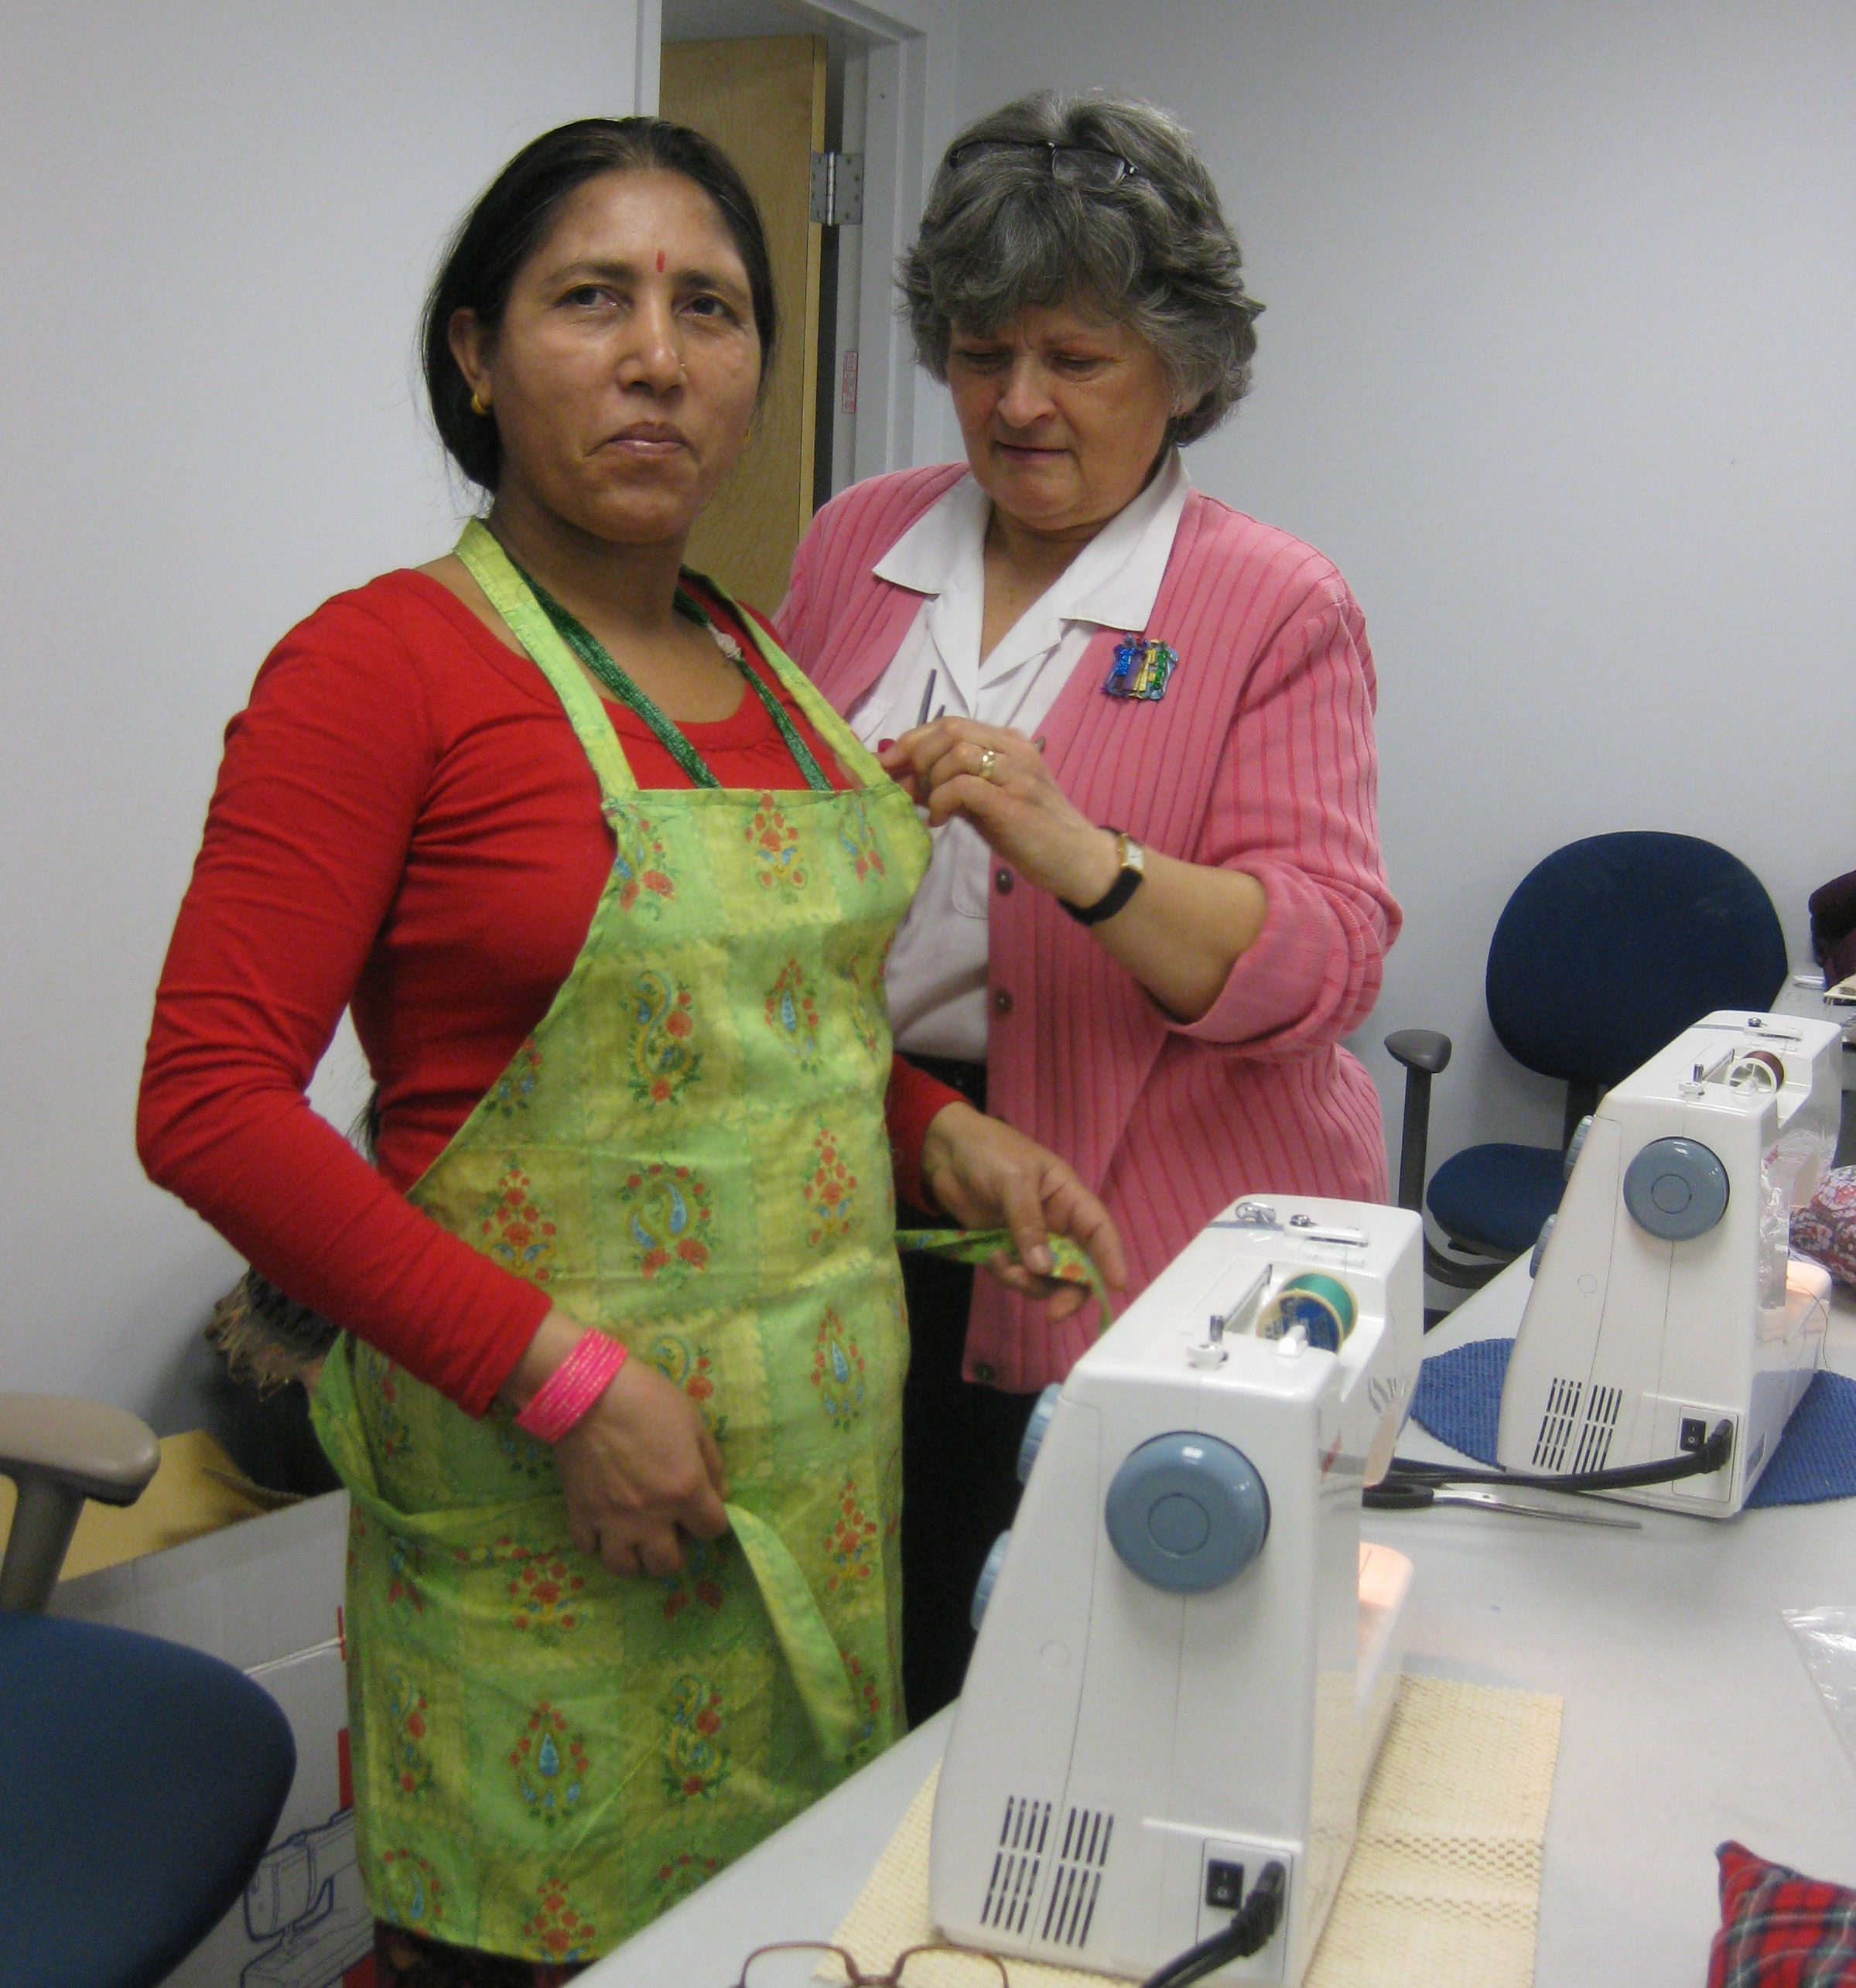 Sewing class - Checking the fit